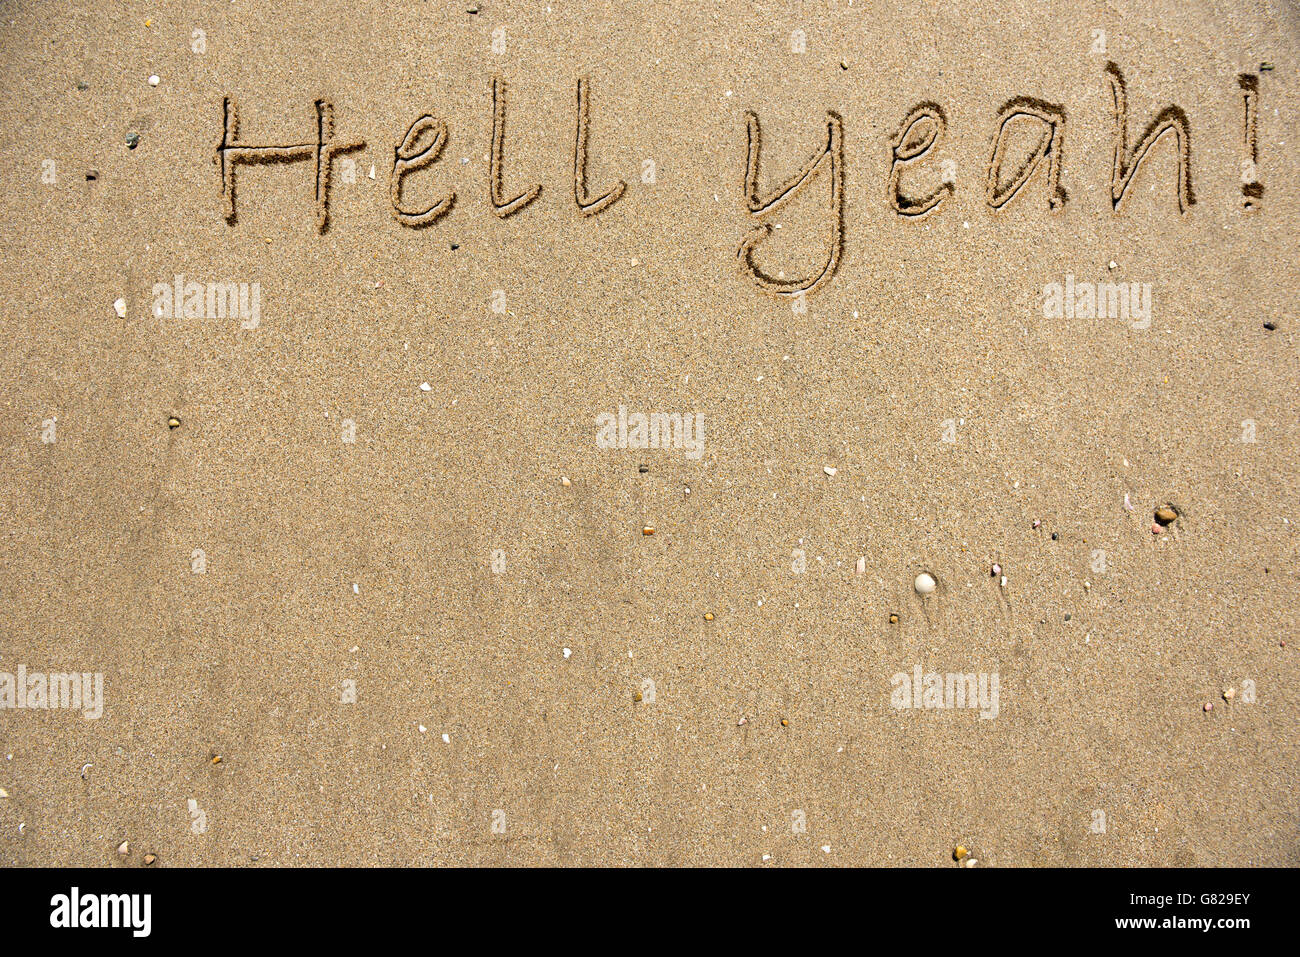 The words Hell Yeah written on sand - Stock Image